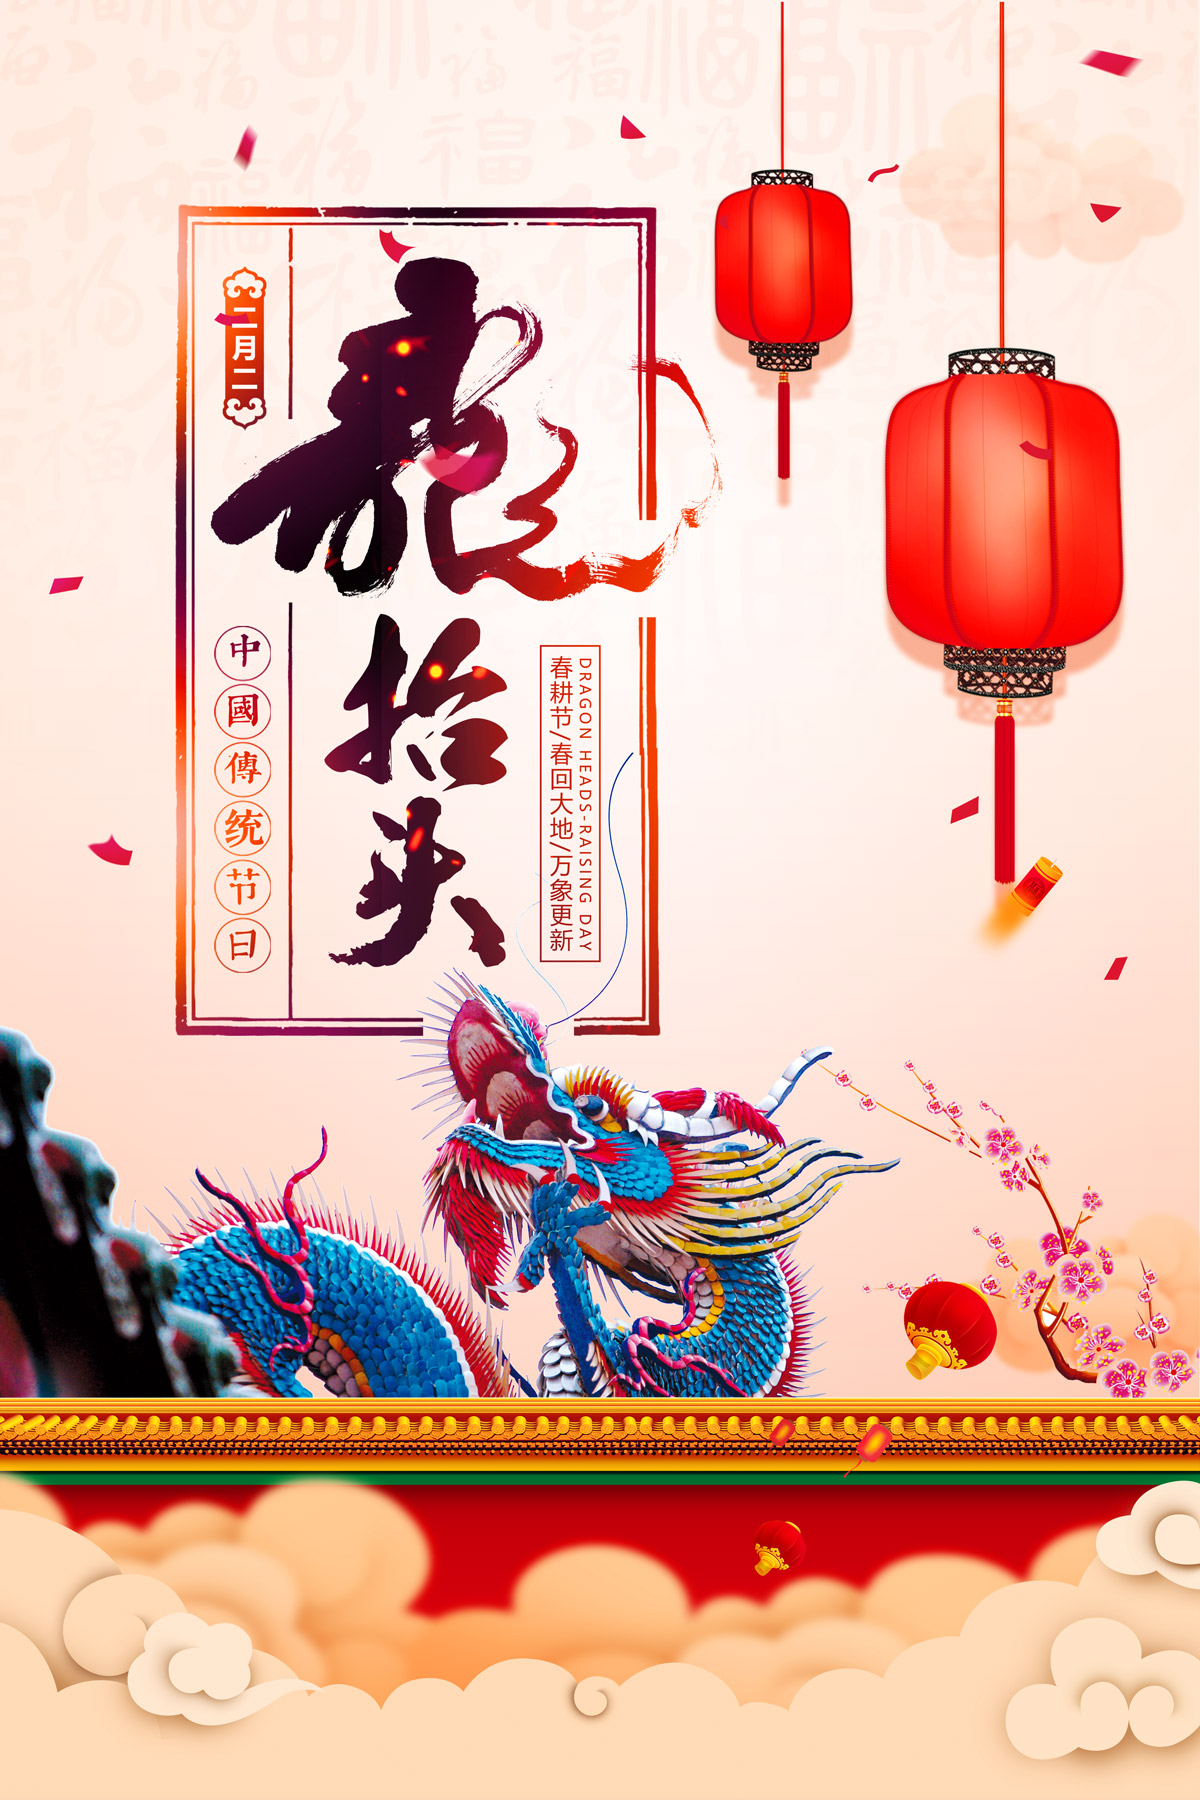 Longtaitou Festival is celebrated in various ways - China PSD File Free Download